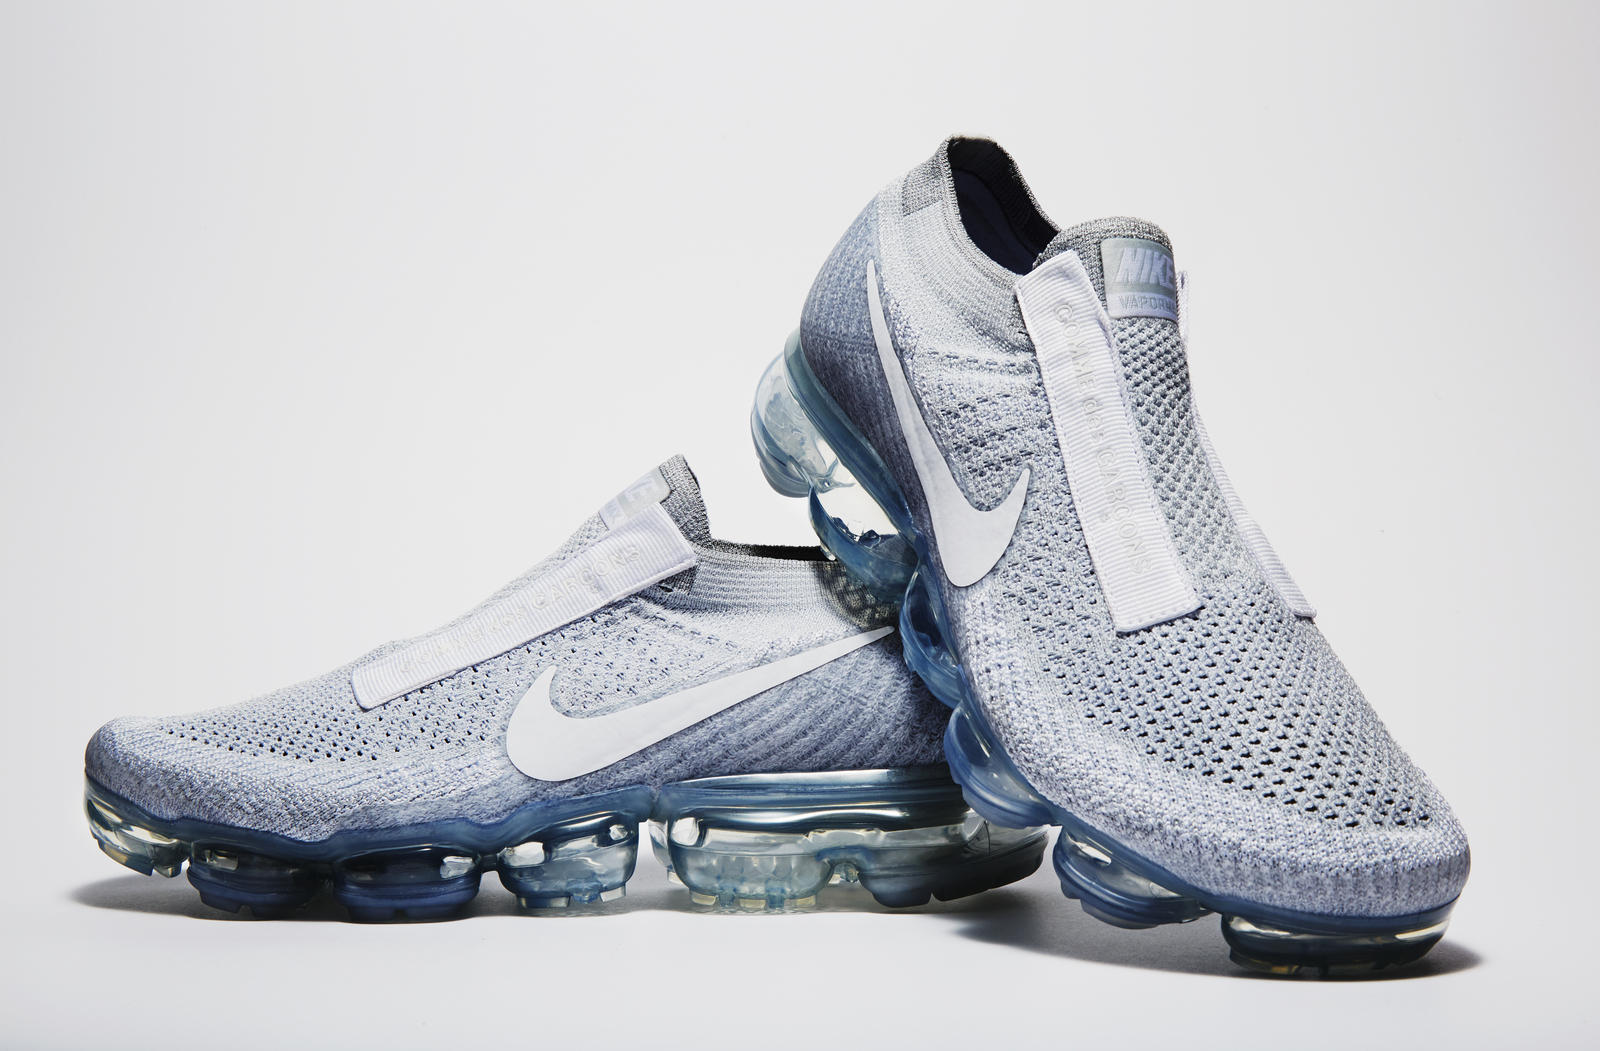 CDG x Nike VaporMax Platinum Review On Feet Villa Tottebo